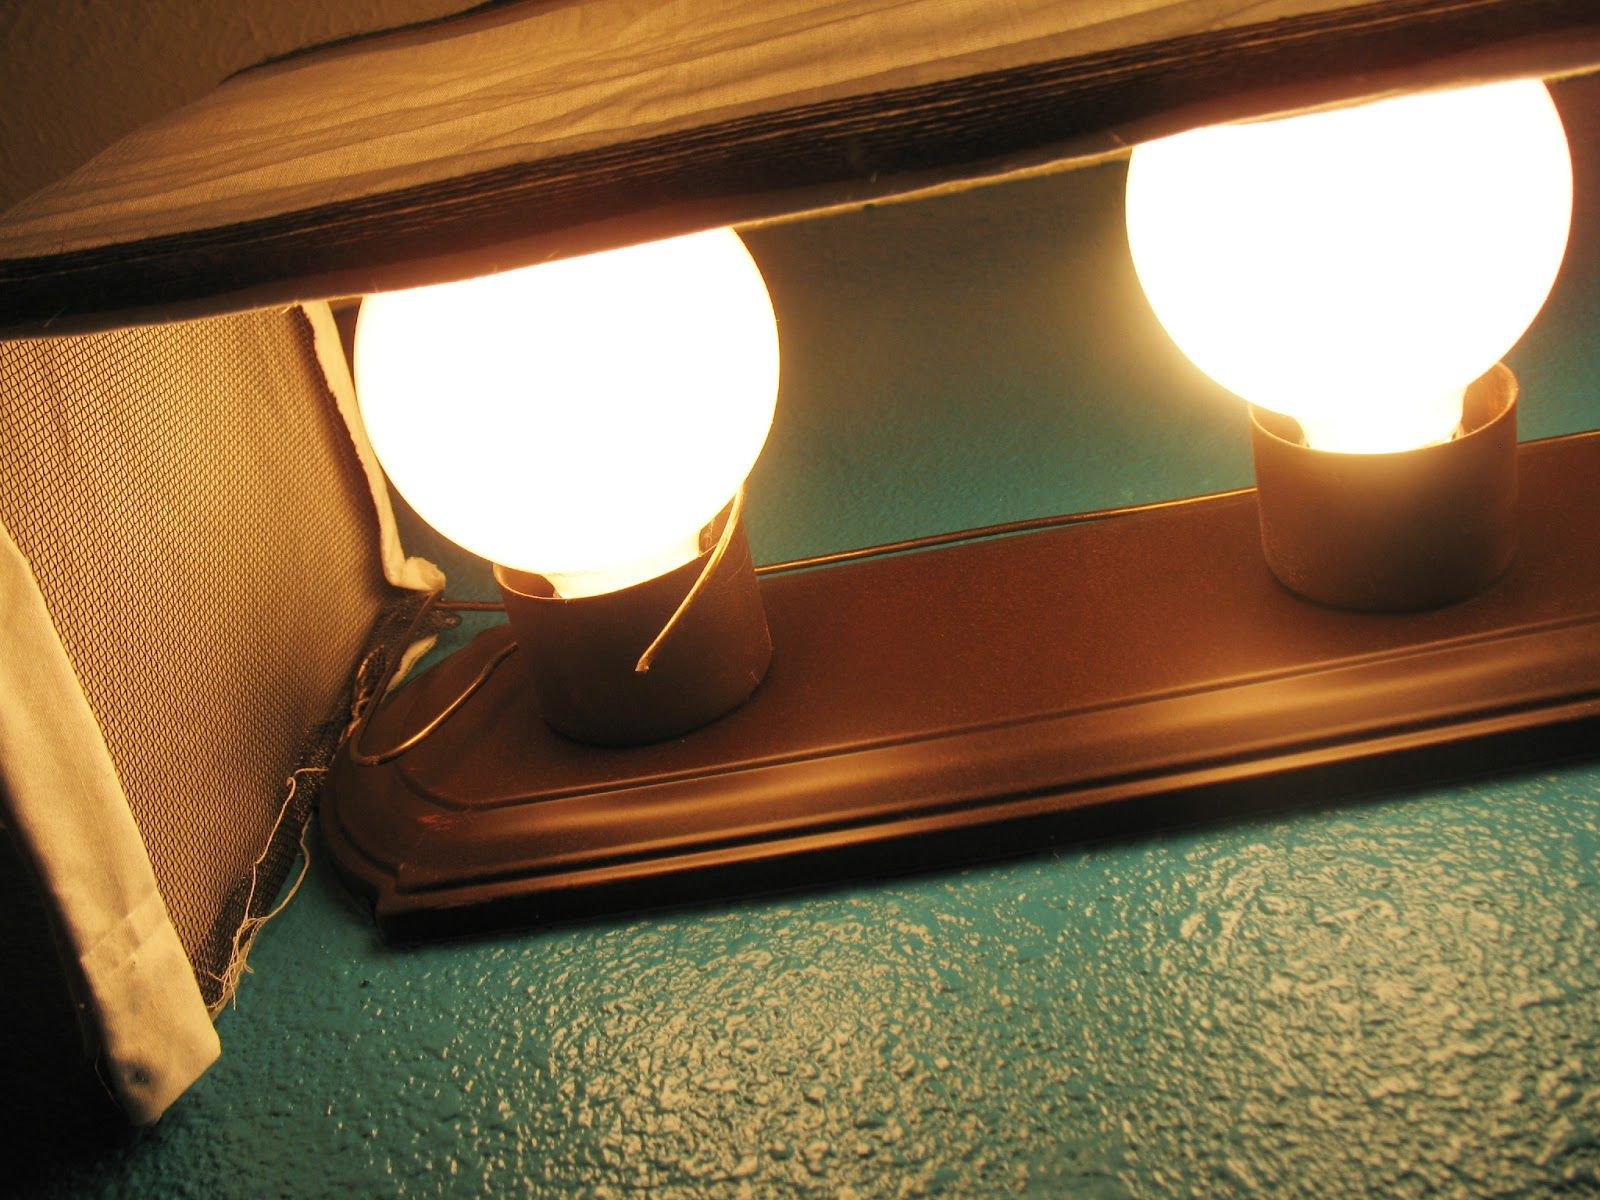 Bar light hack: how to cheaply cover an old vanity strip light ...